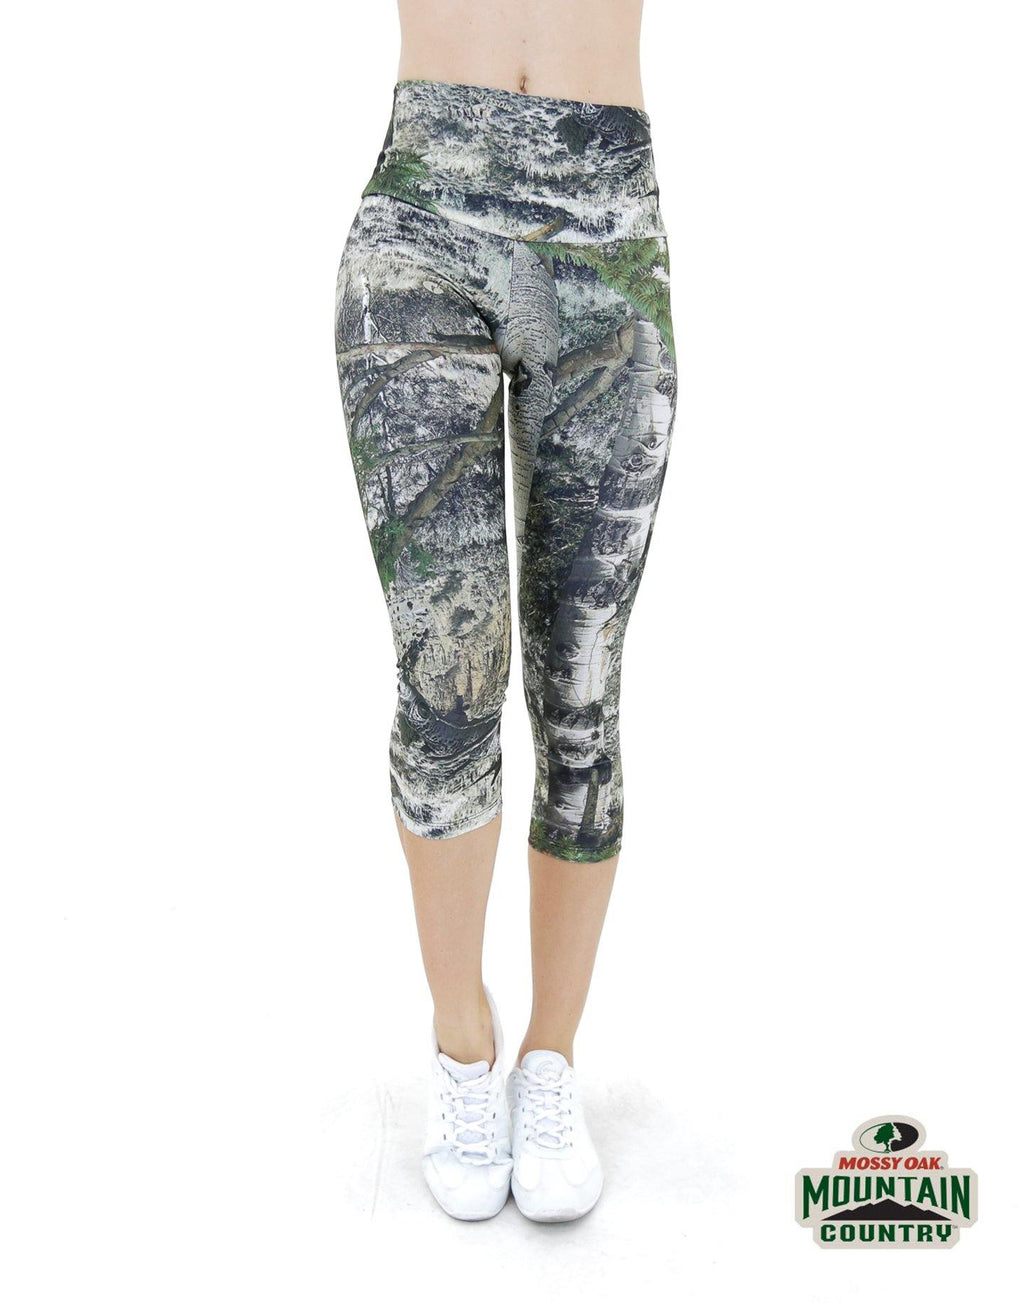 Apsara Leggings High Waist Capri, Mossy Oak Mountain Country